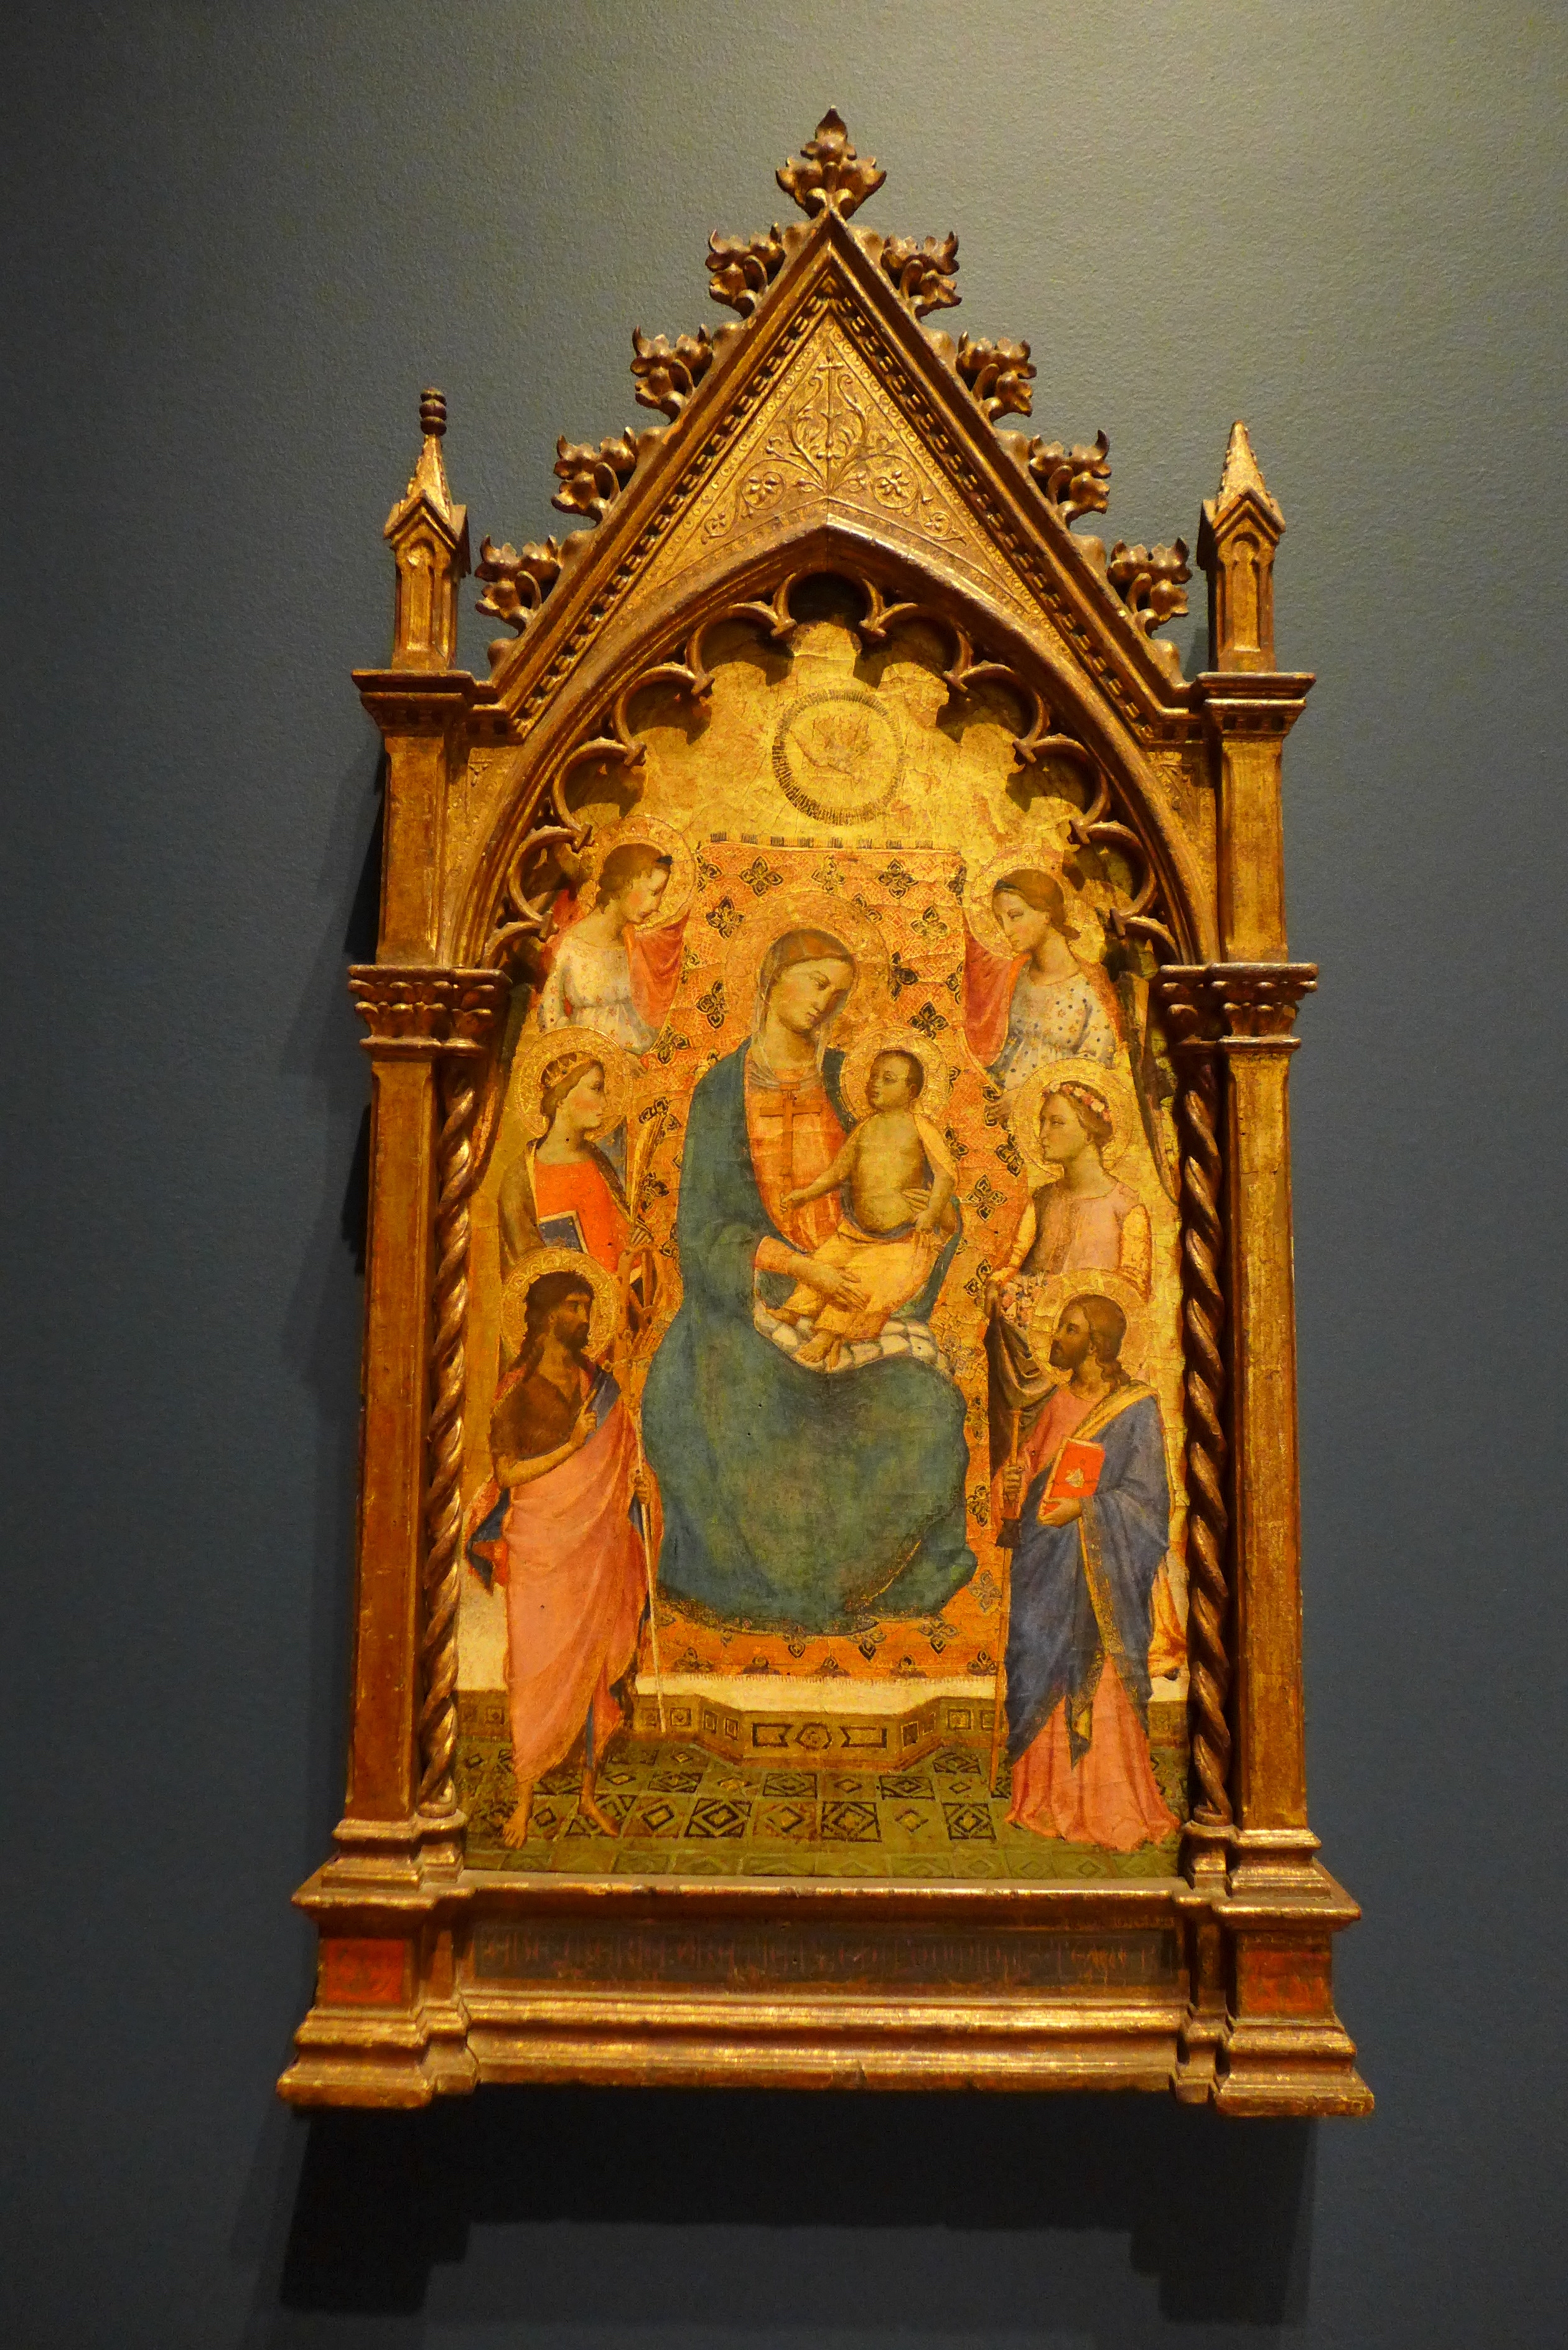 Mary and Christ sit on a throne in front of a flat gold ground. Angels and saints stand around them. The picture has the shape of a pointed arch.